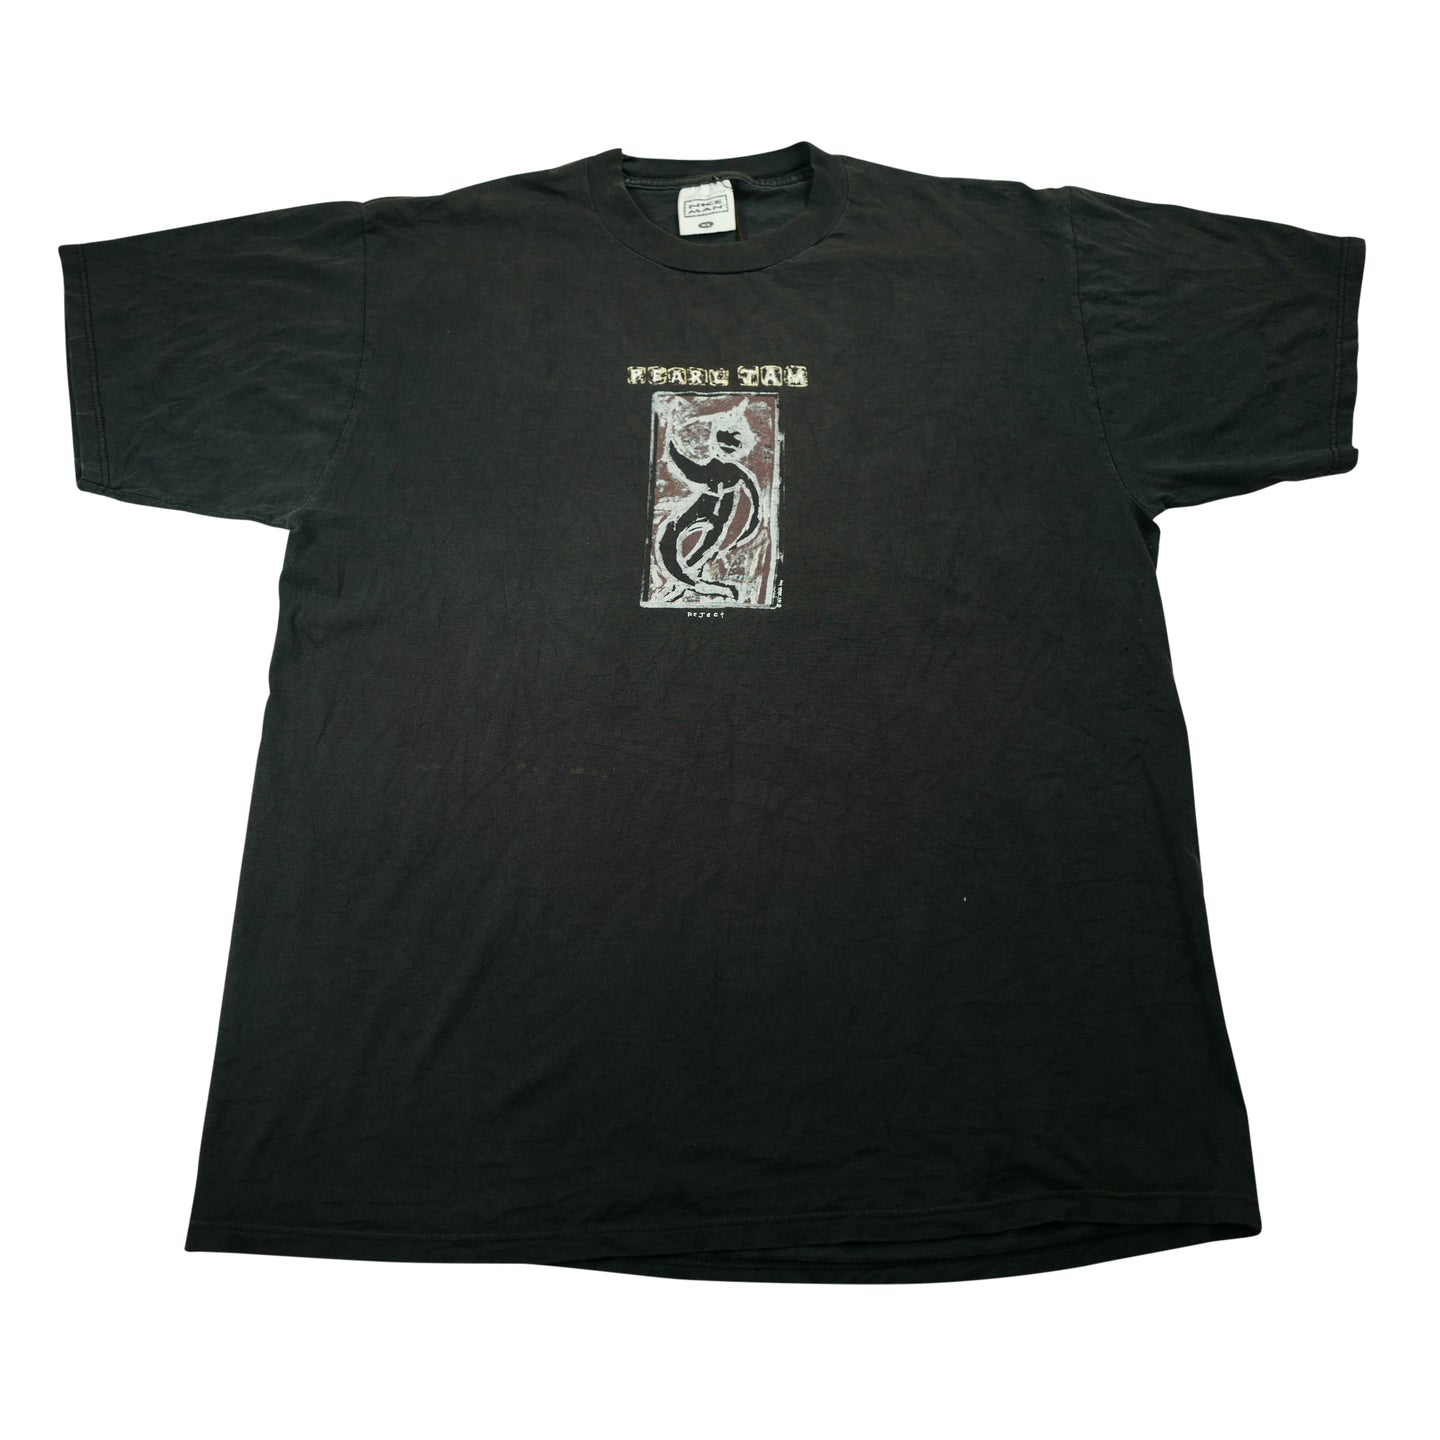 Vintage 1993 Pearl Jam Reject Tour Tee